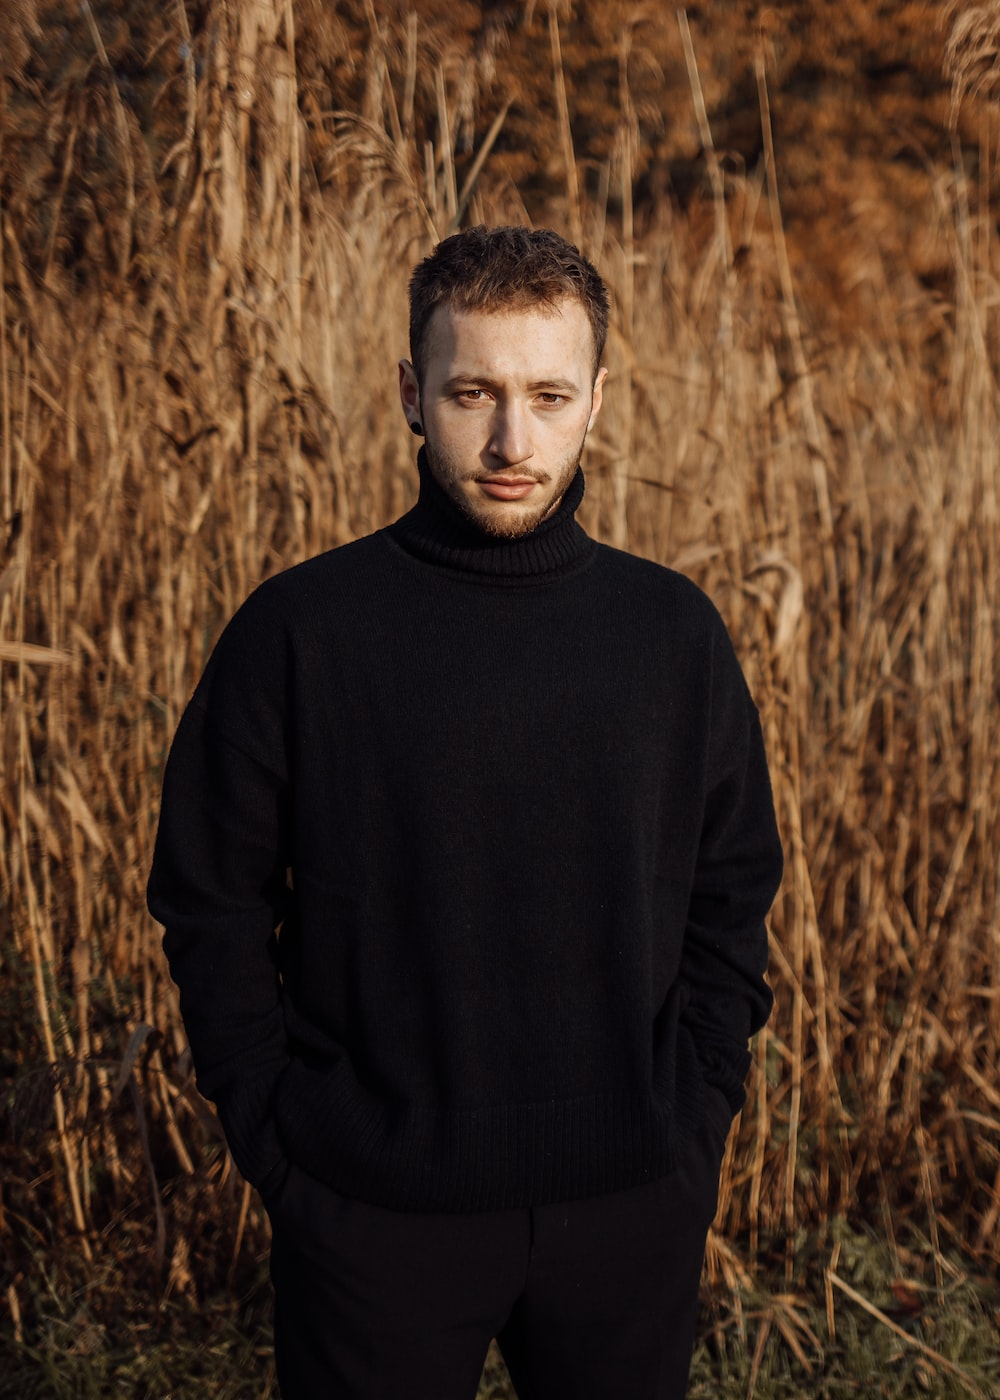 man in black turtleneck sweater by plant field during daytime